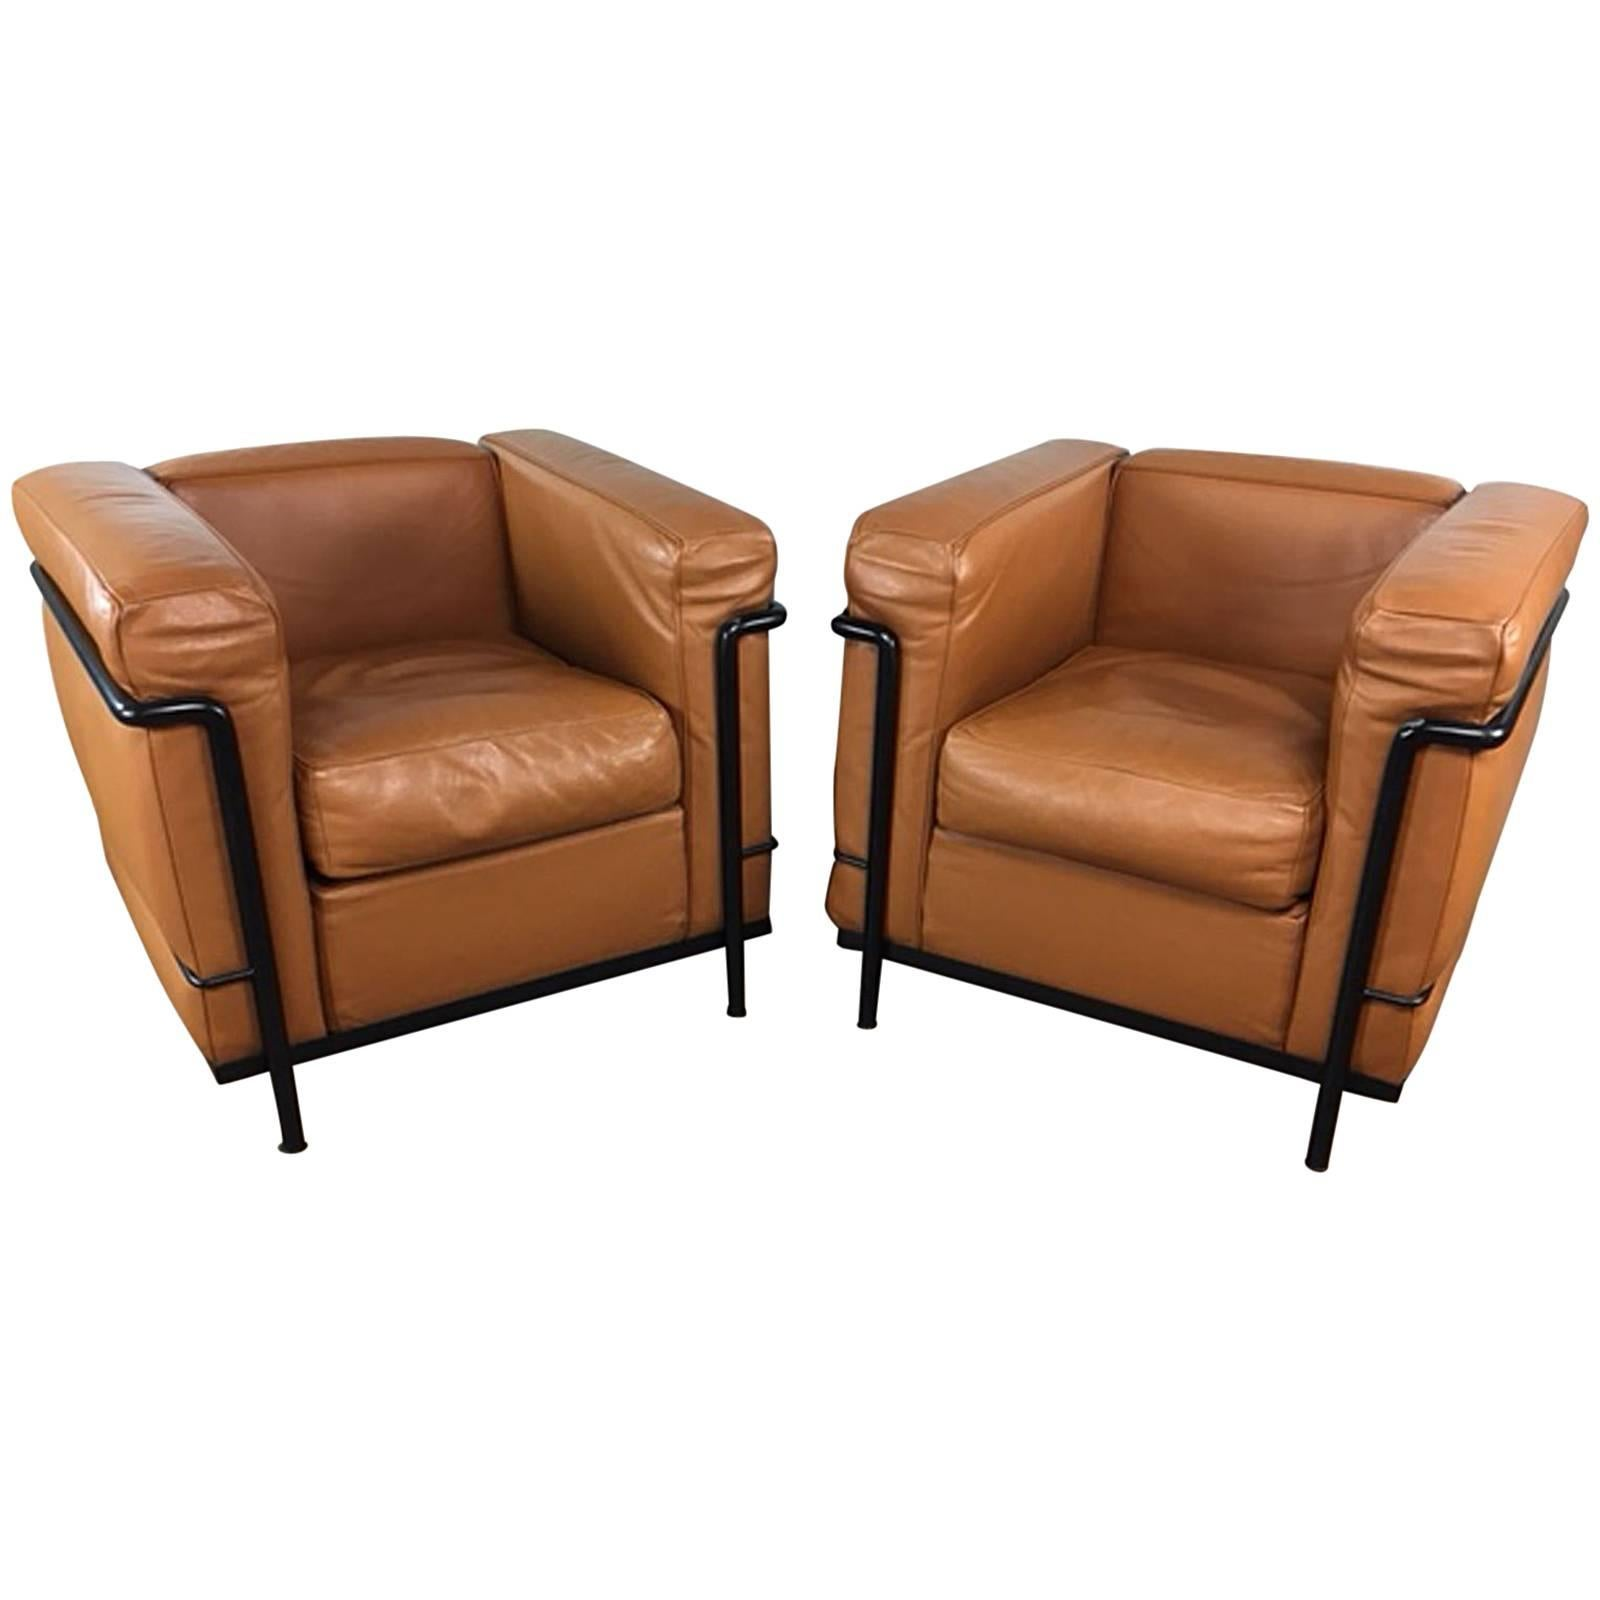 Delightful Le Corbusier Lc2 Club Chair Pair By Cassina